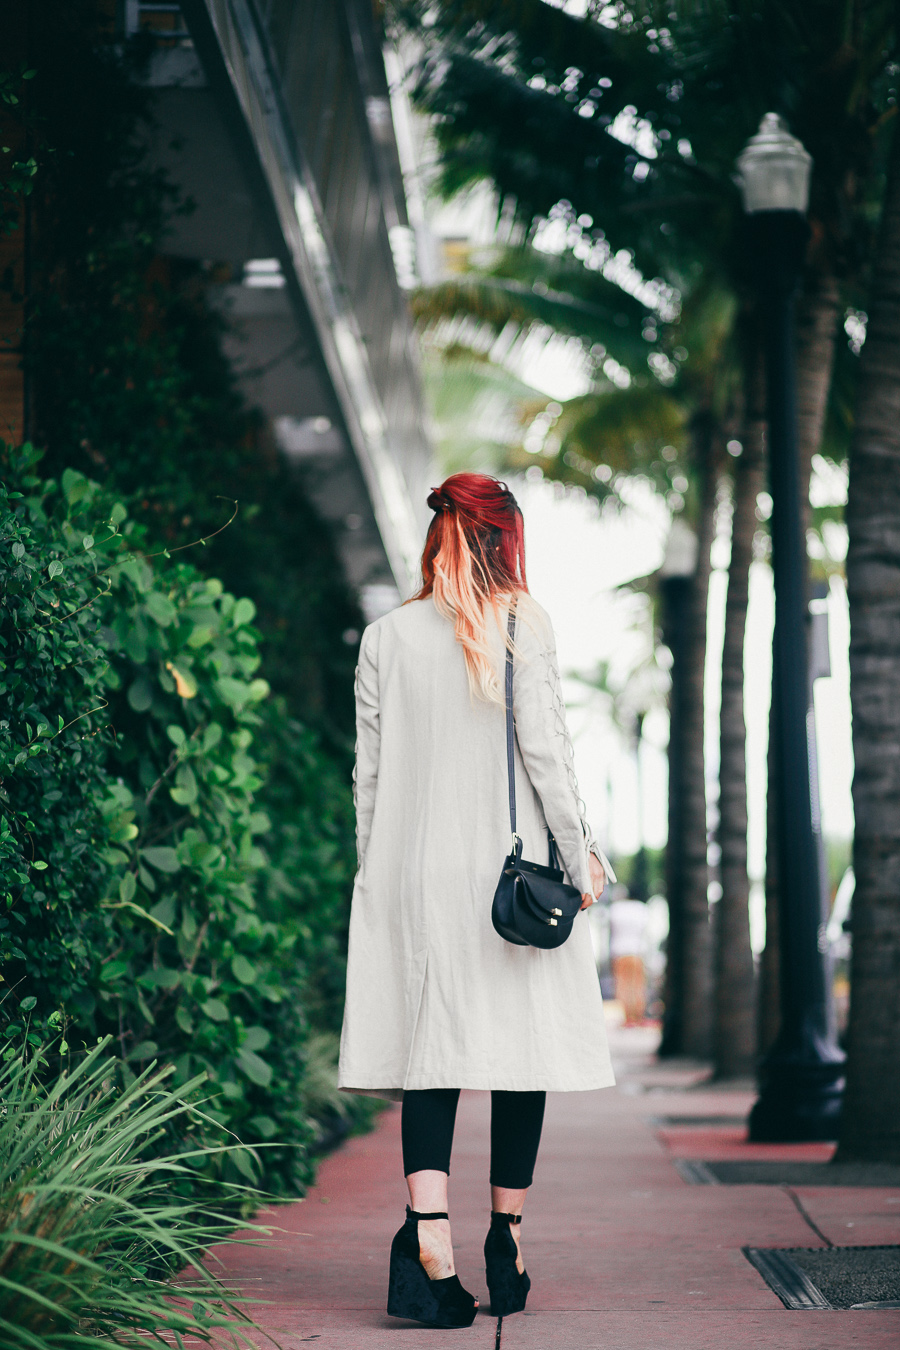 Le Happy in Miami wearing Hansen and Gretel and Chloe bag